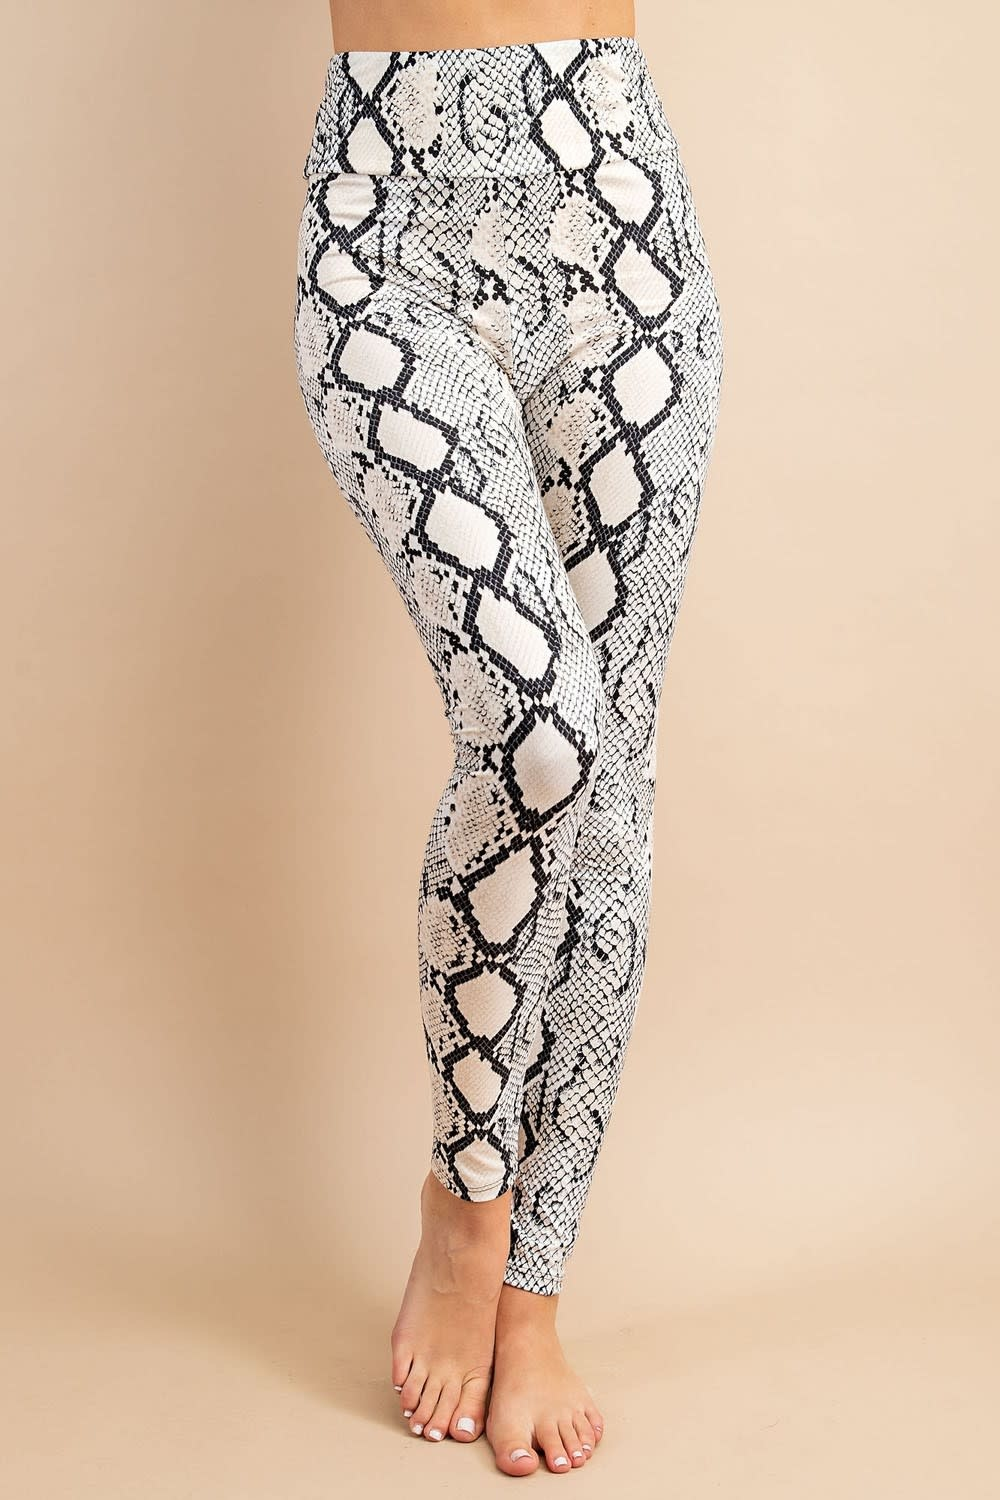 eesome usa Snake Print High Waisted Leggings